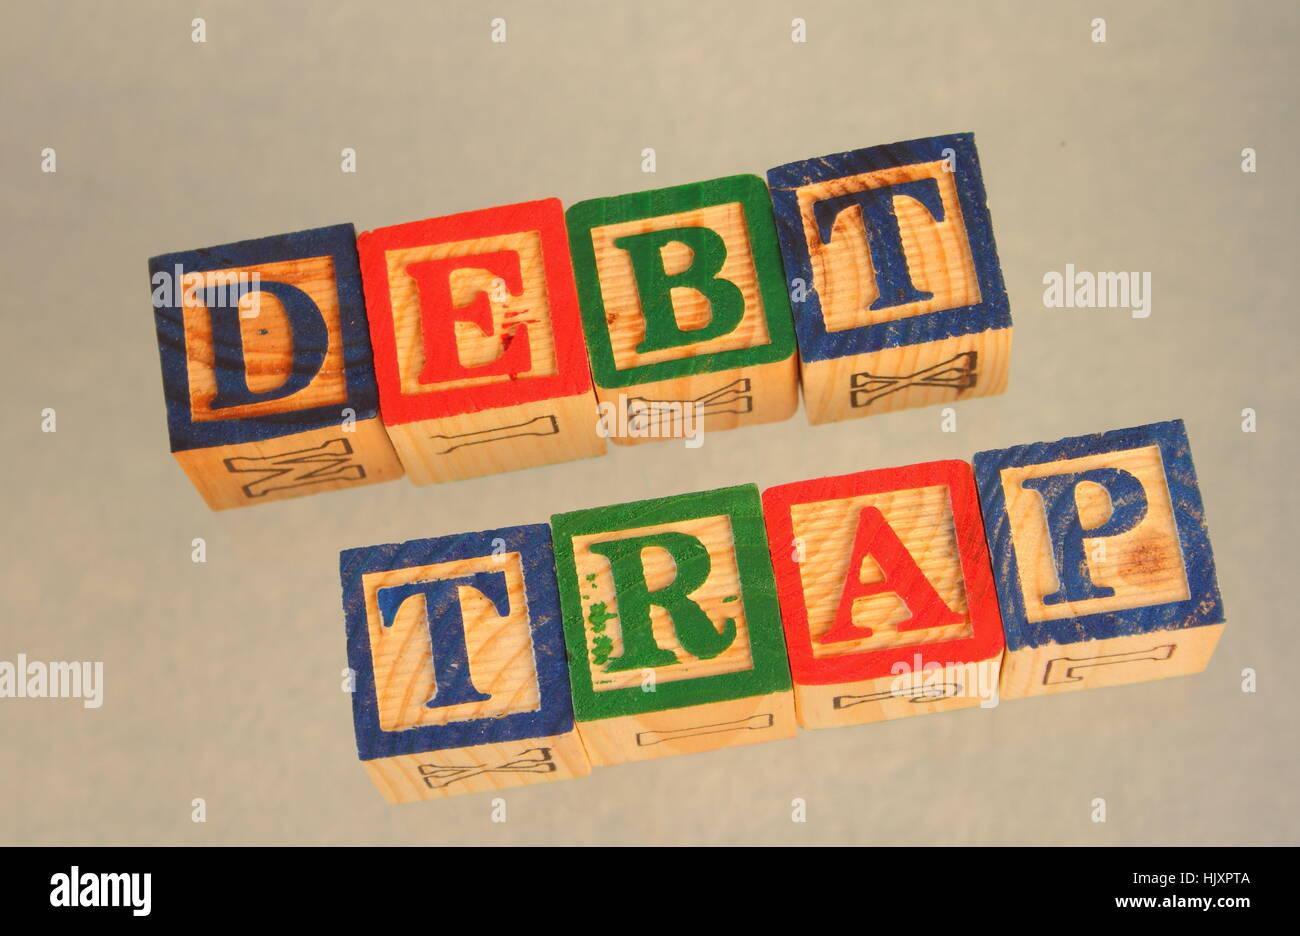 Business term - debt trap - visually displayed on a white background in landscape format - Stock Image